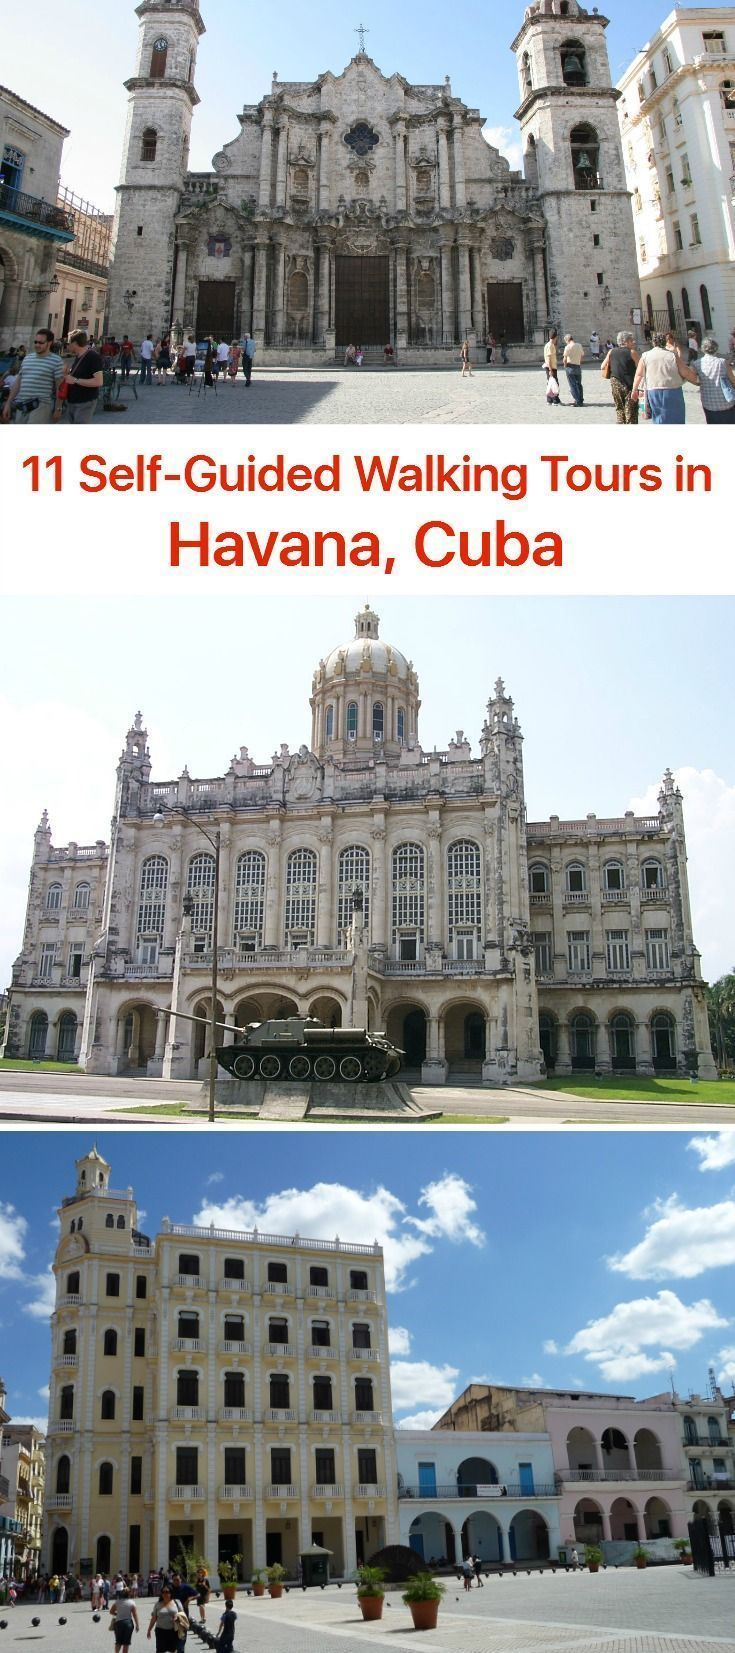 Much as the whole island of Cuba, Havana  the capital city  is a colorful and rather iconic destination. One of the few pockets of socialism left on the face of the planet, Havana represents a weird blend of Spanish colonial architecture, 1950s U.S.-mad